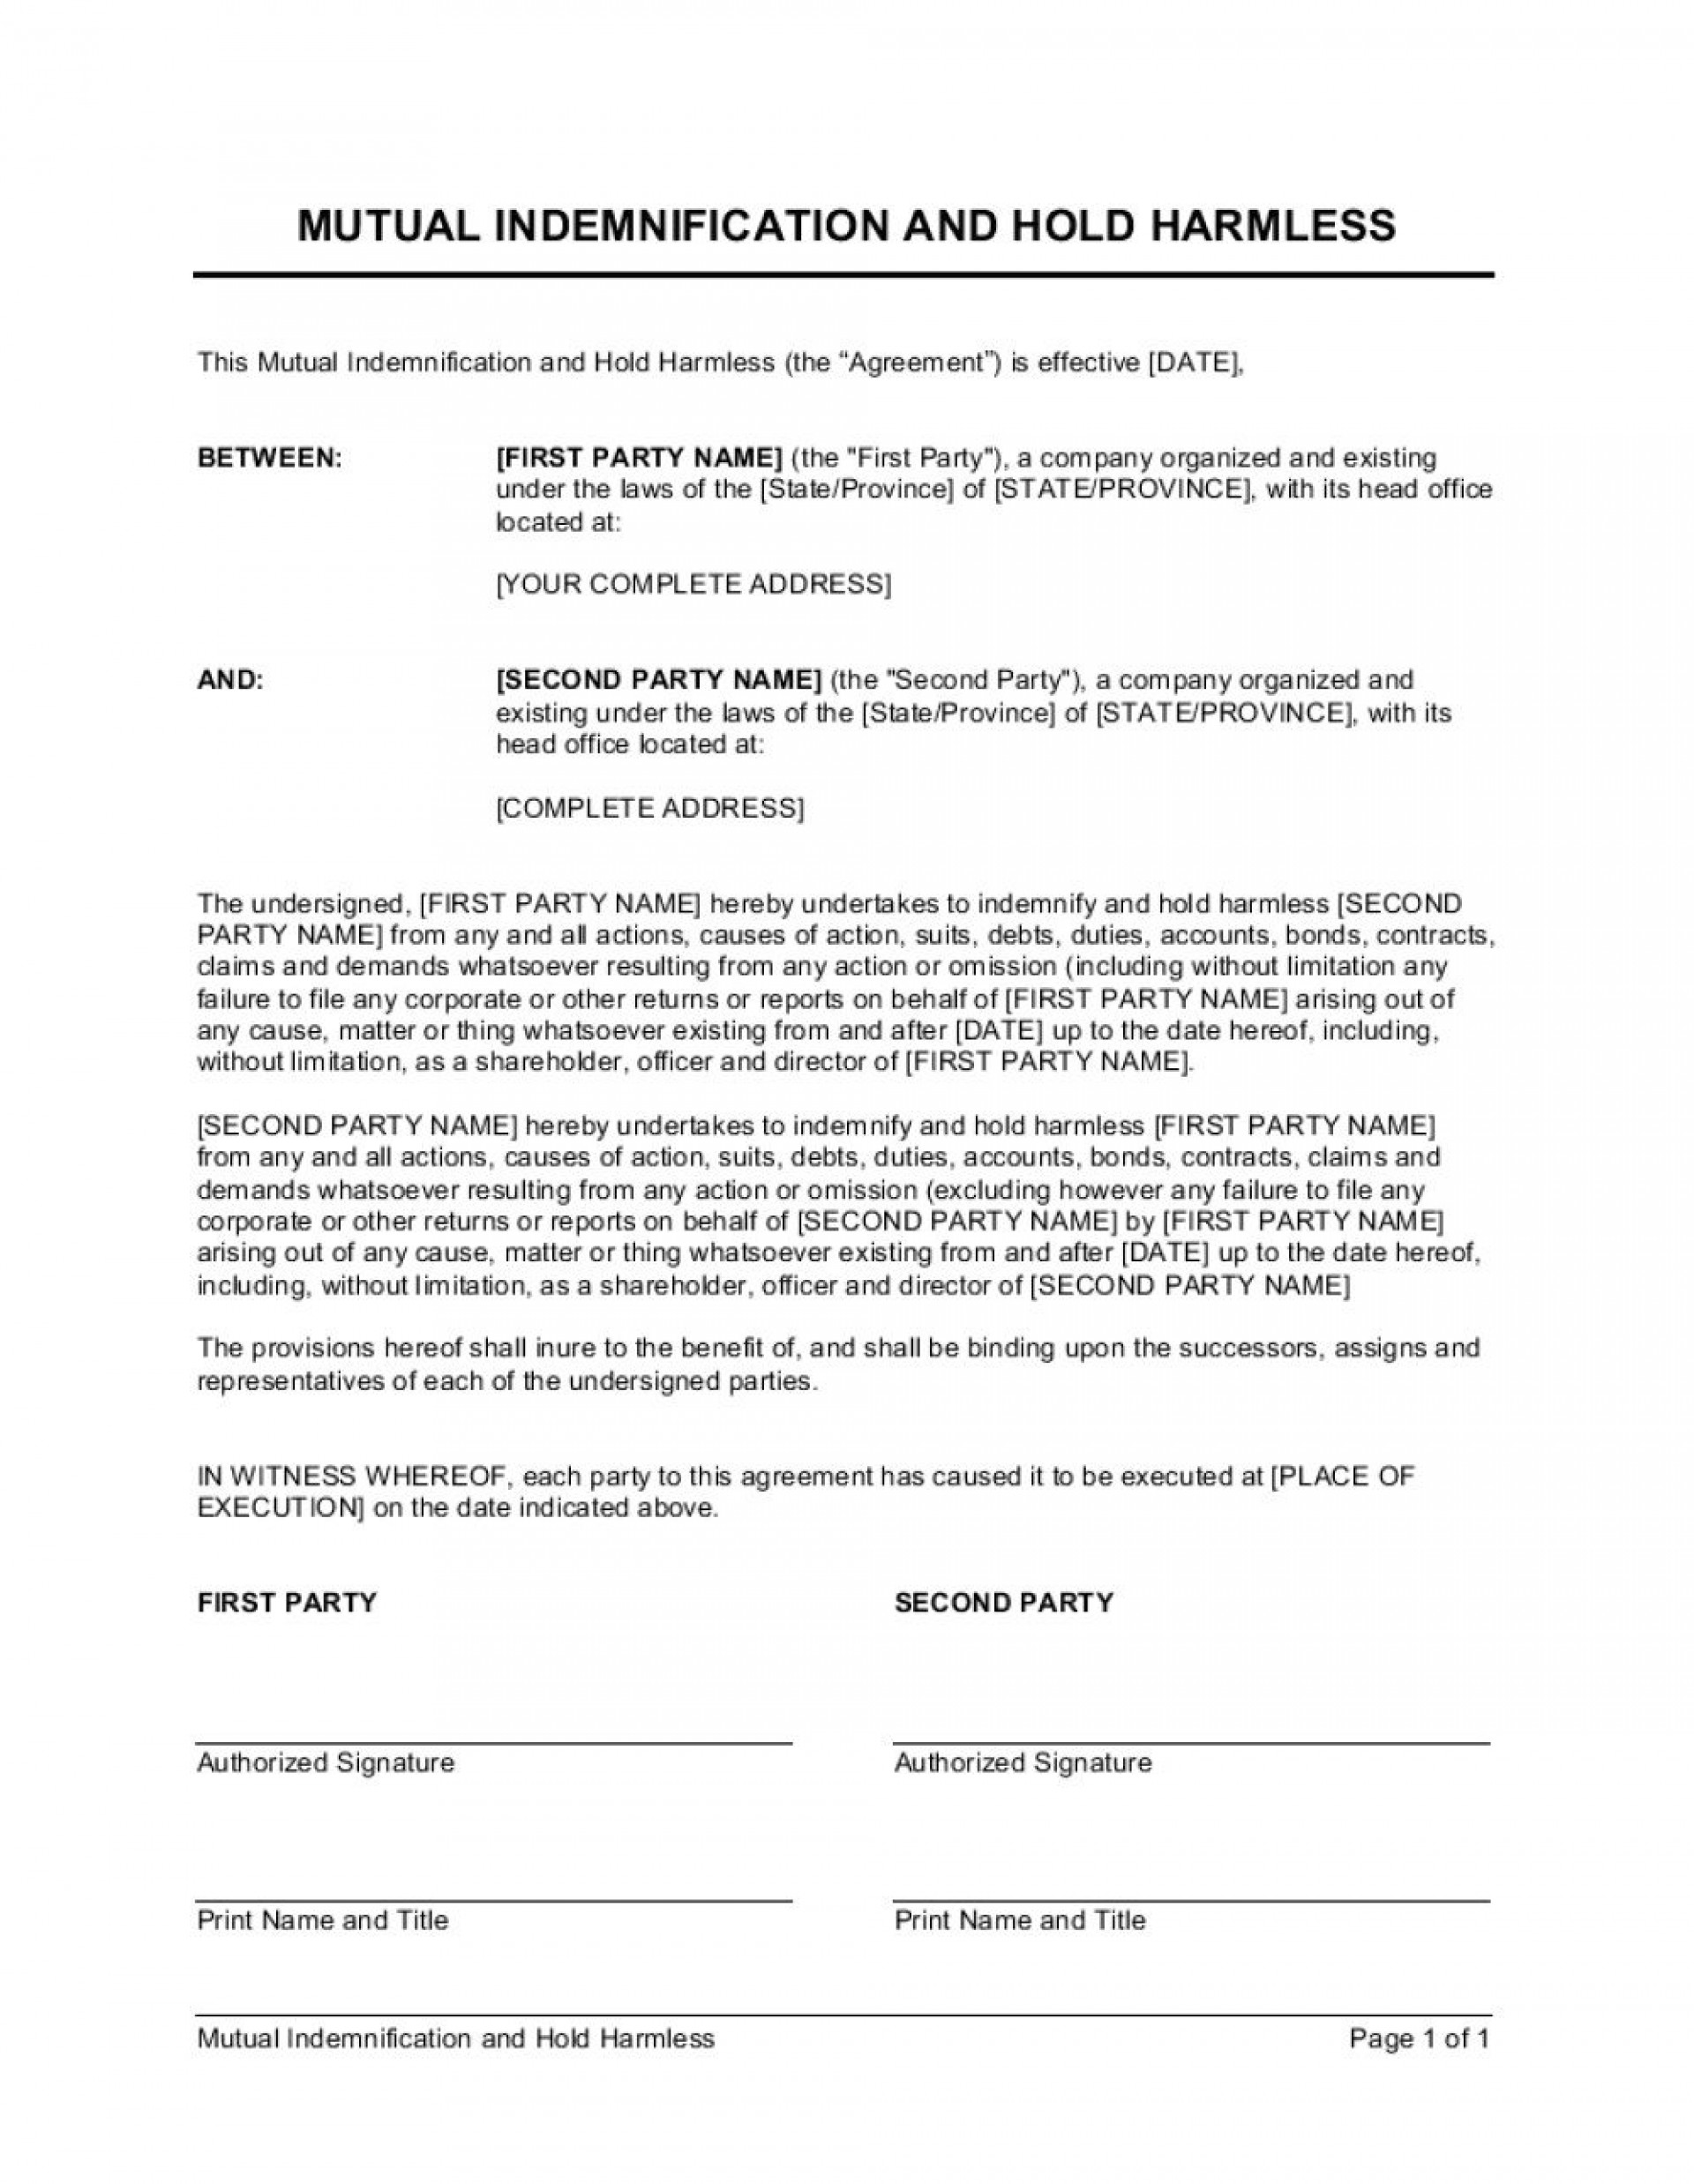 009 Impressive Hold Harmles Agreement Template Sample  Canada Word Free Download1920